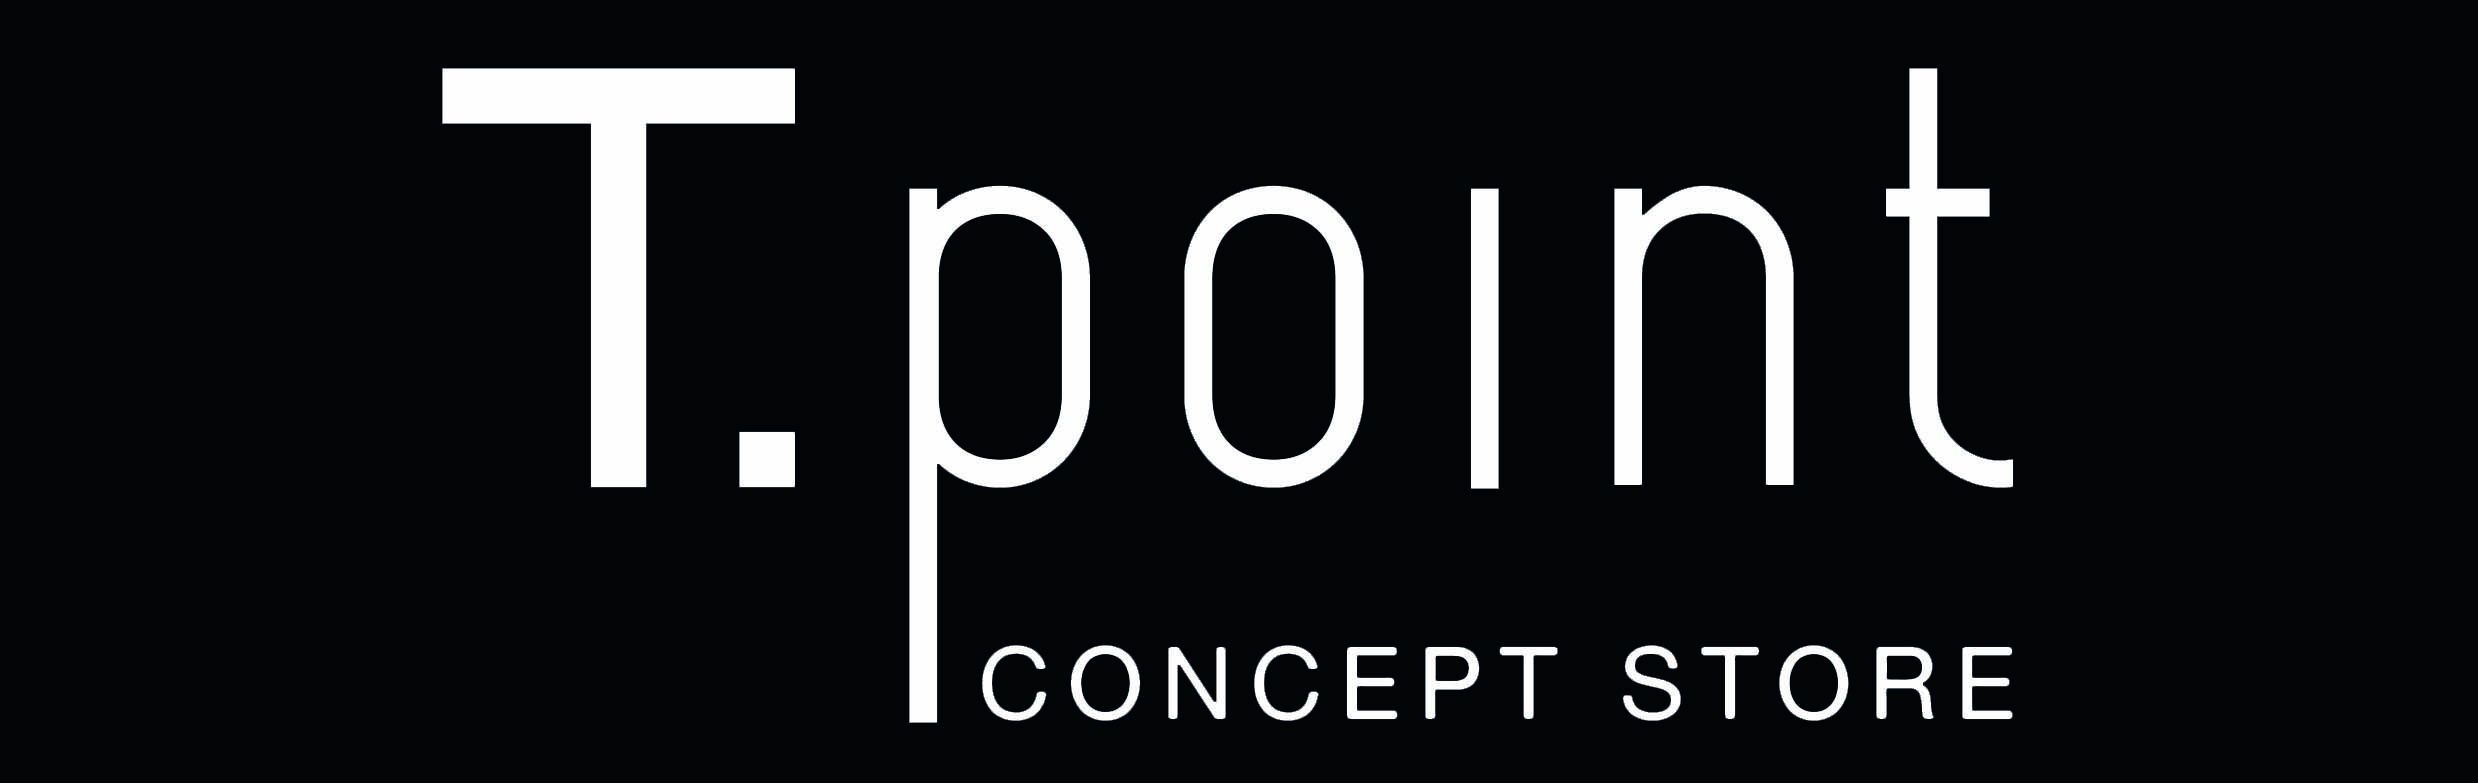 T.point concept store